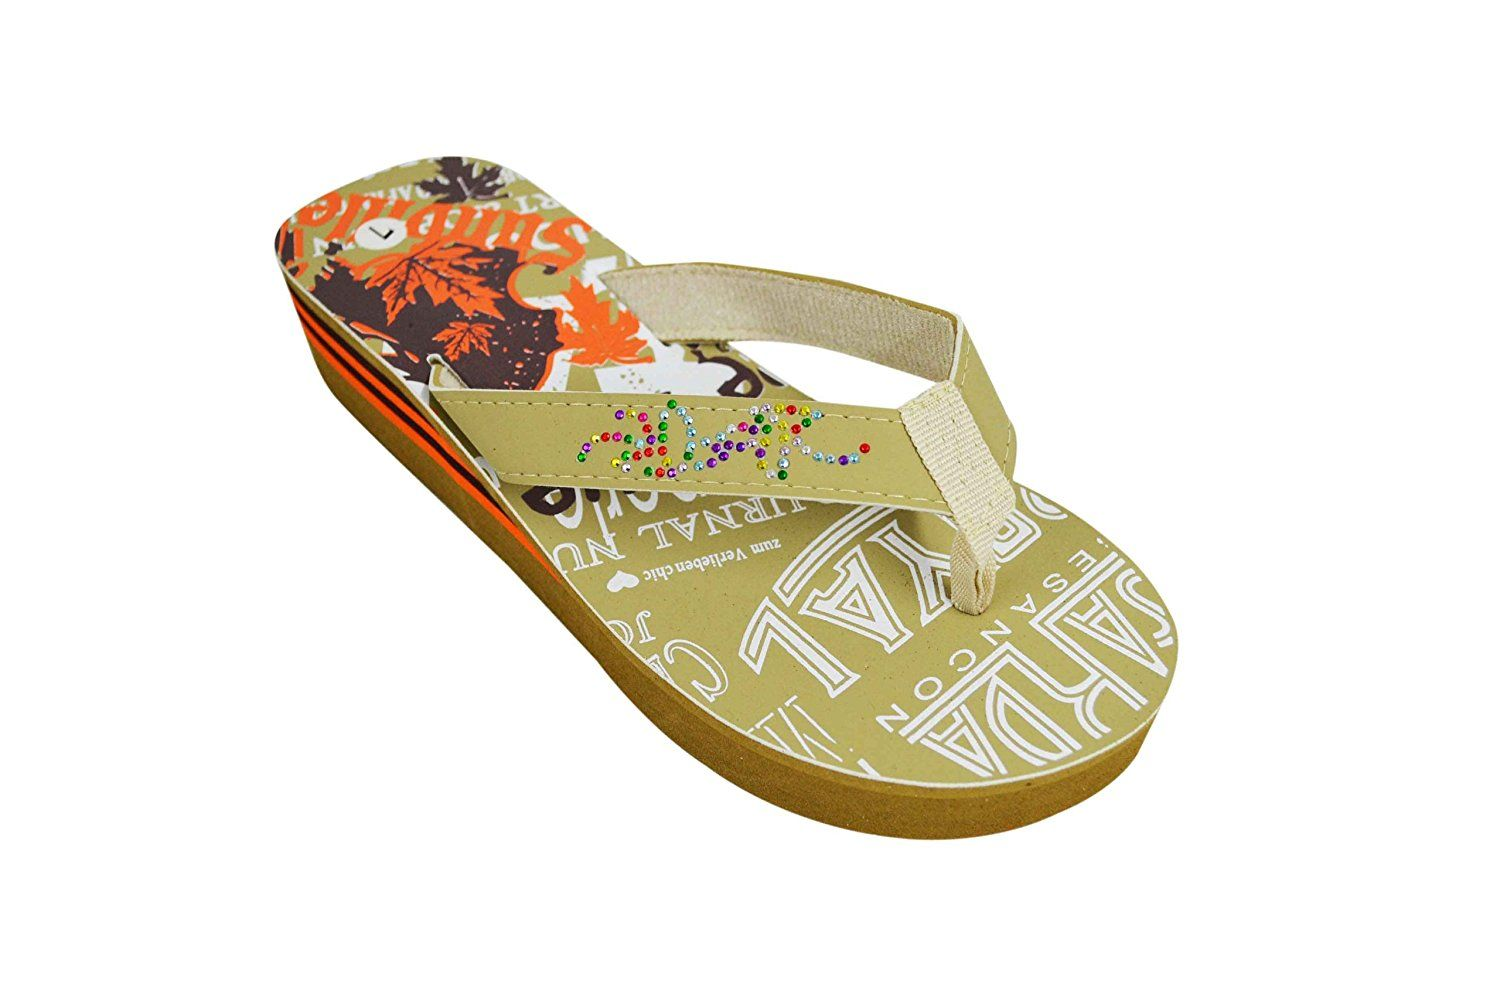 Sunville Women's Stylish Embellished Colorful Printed Wedge Beach Vocation Flip Flop Sandals 2336 -- You can get additional details at the image link.